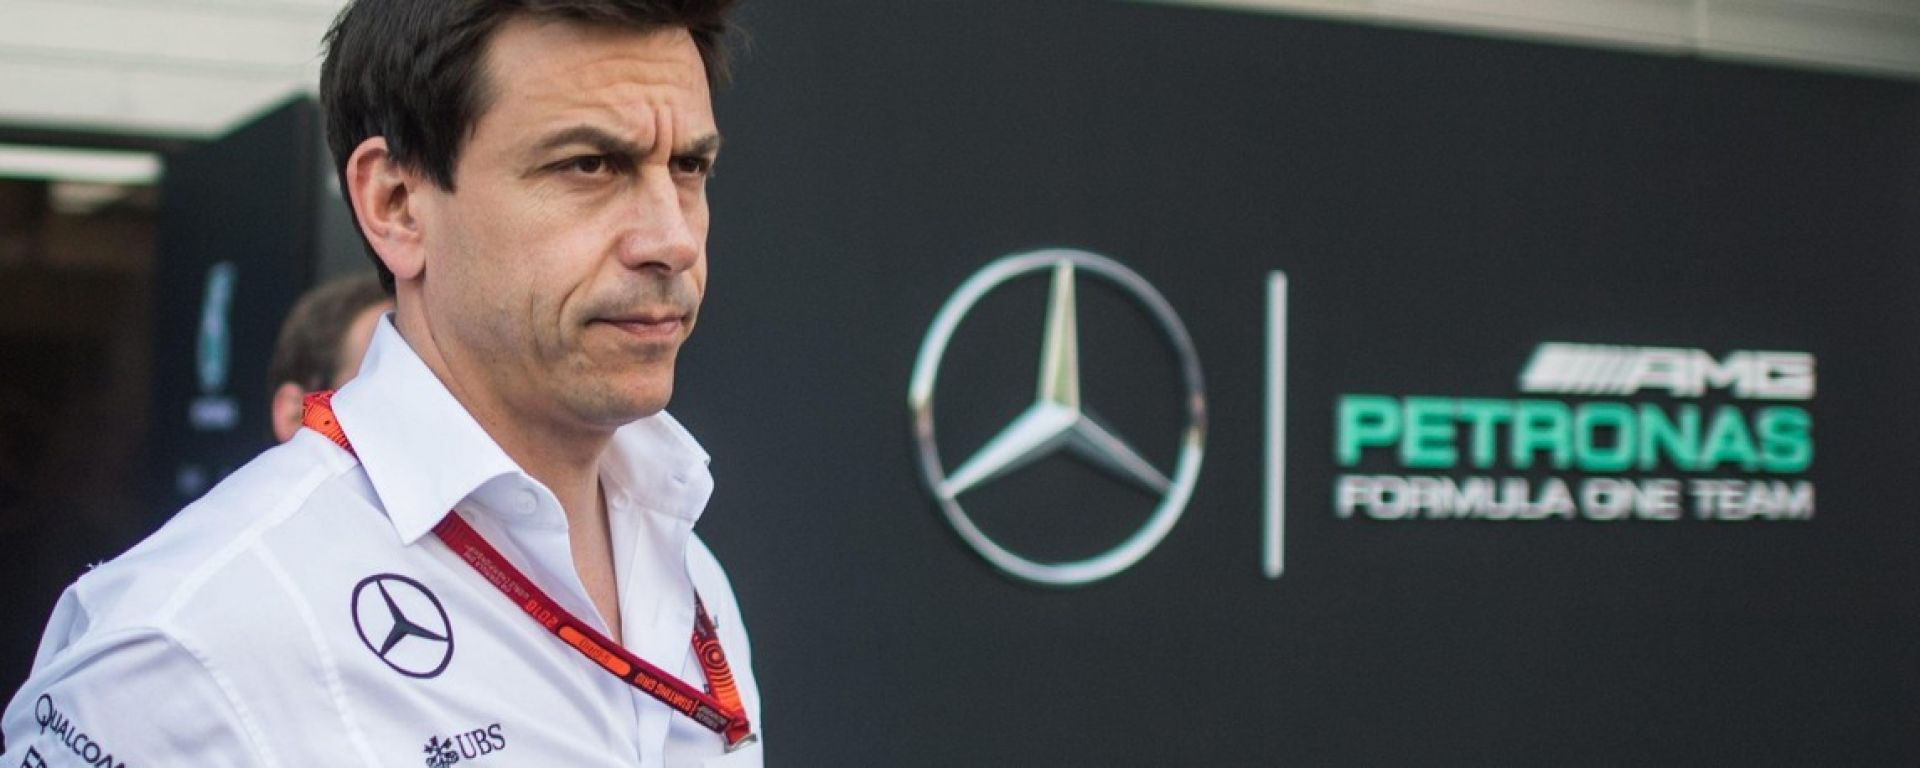 Toto Wolff, Mercedes AMG Petronas